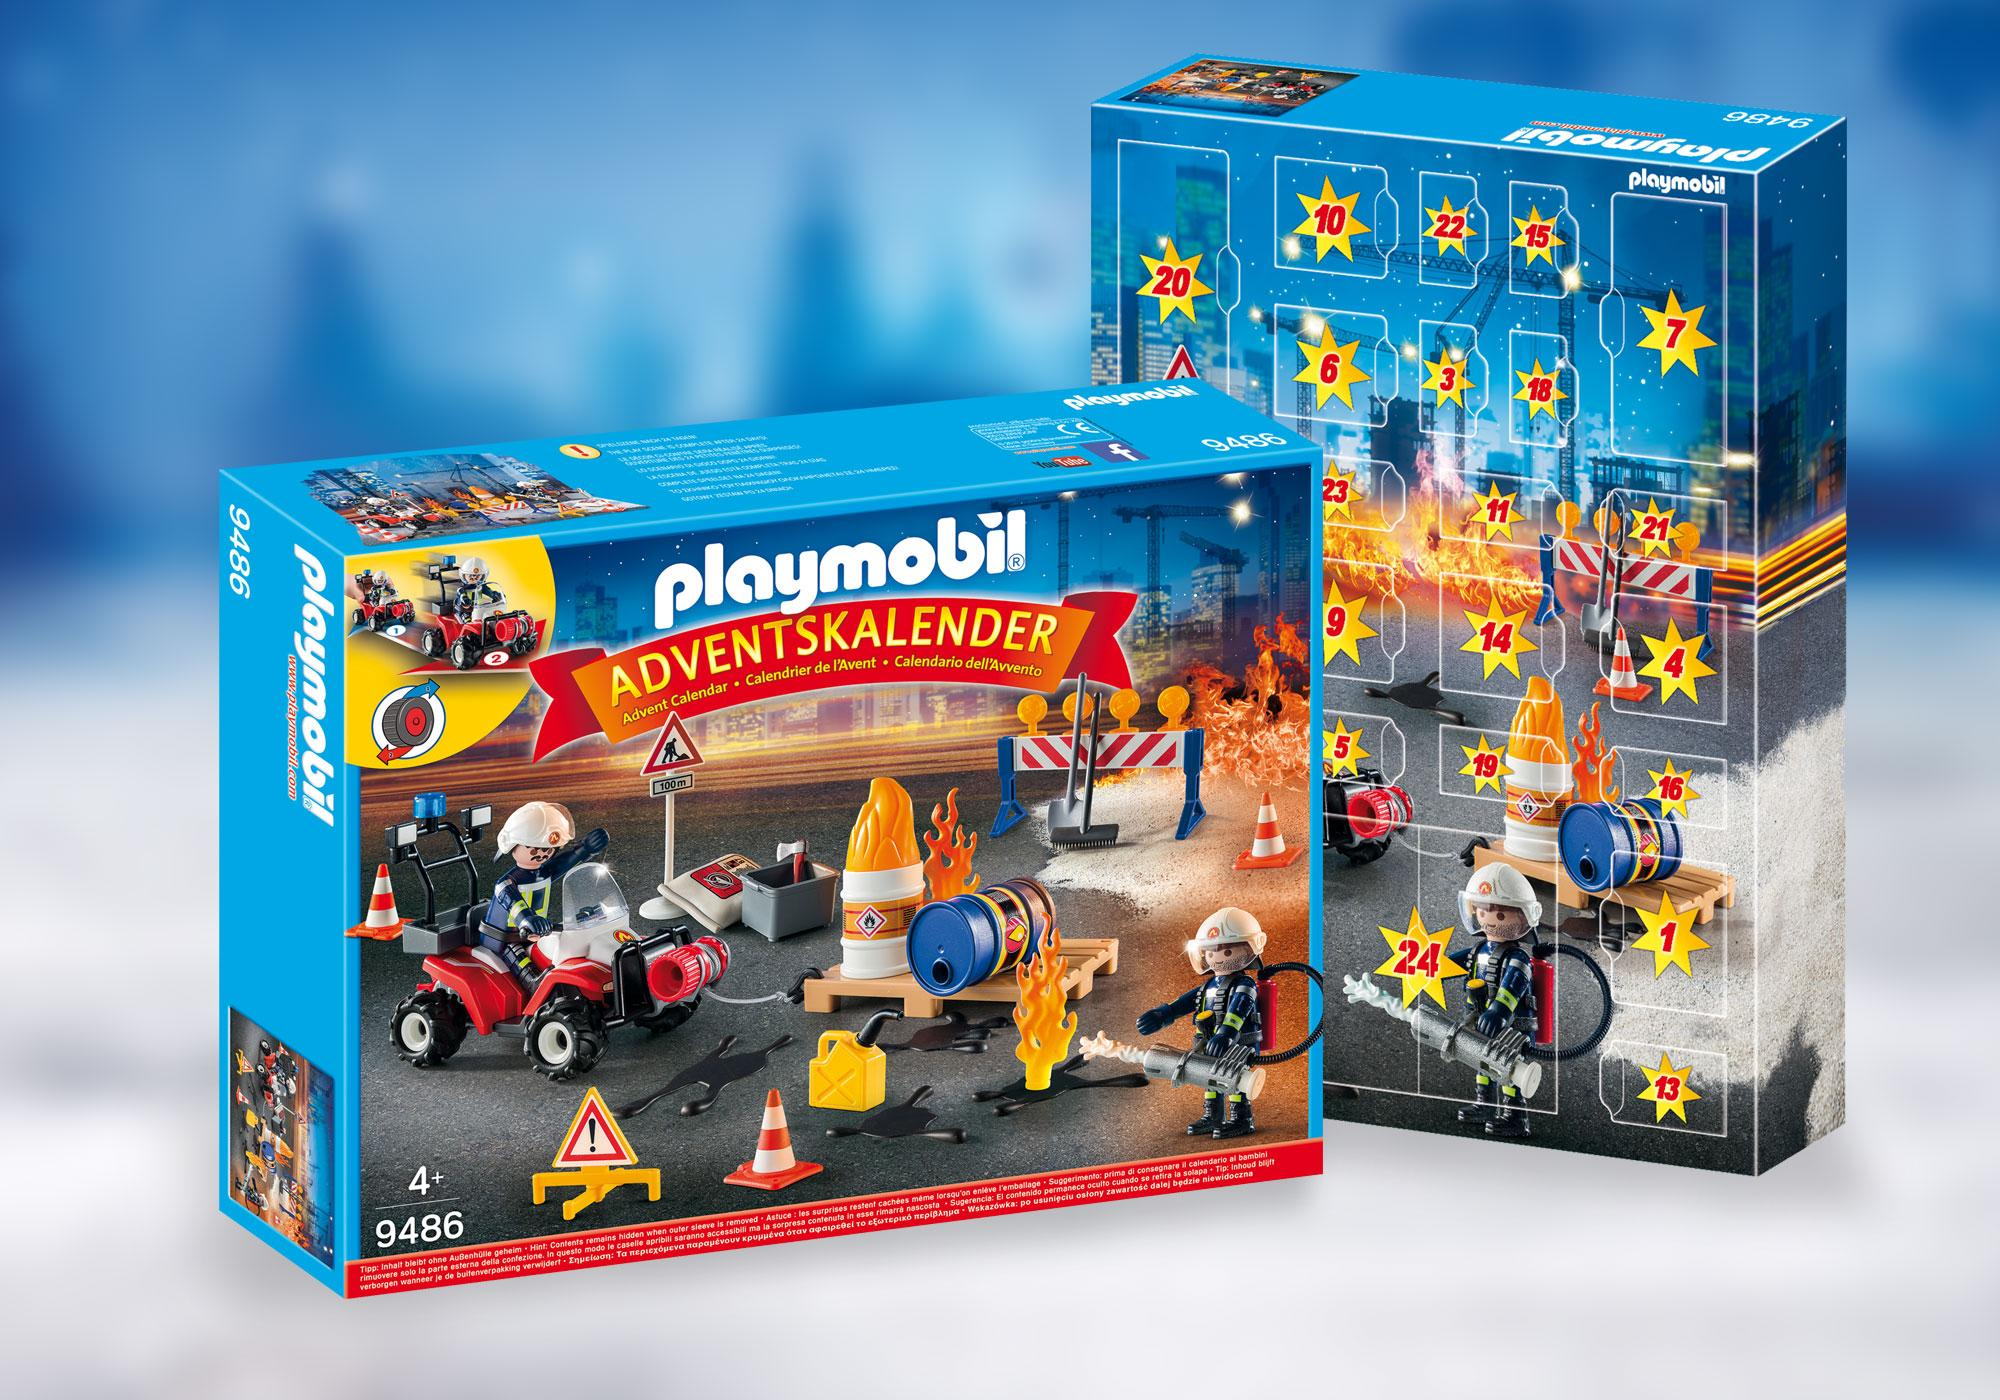 http://media.playmobil.com/i/playmobil/9486_product_detail